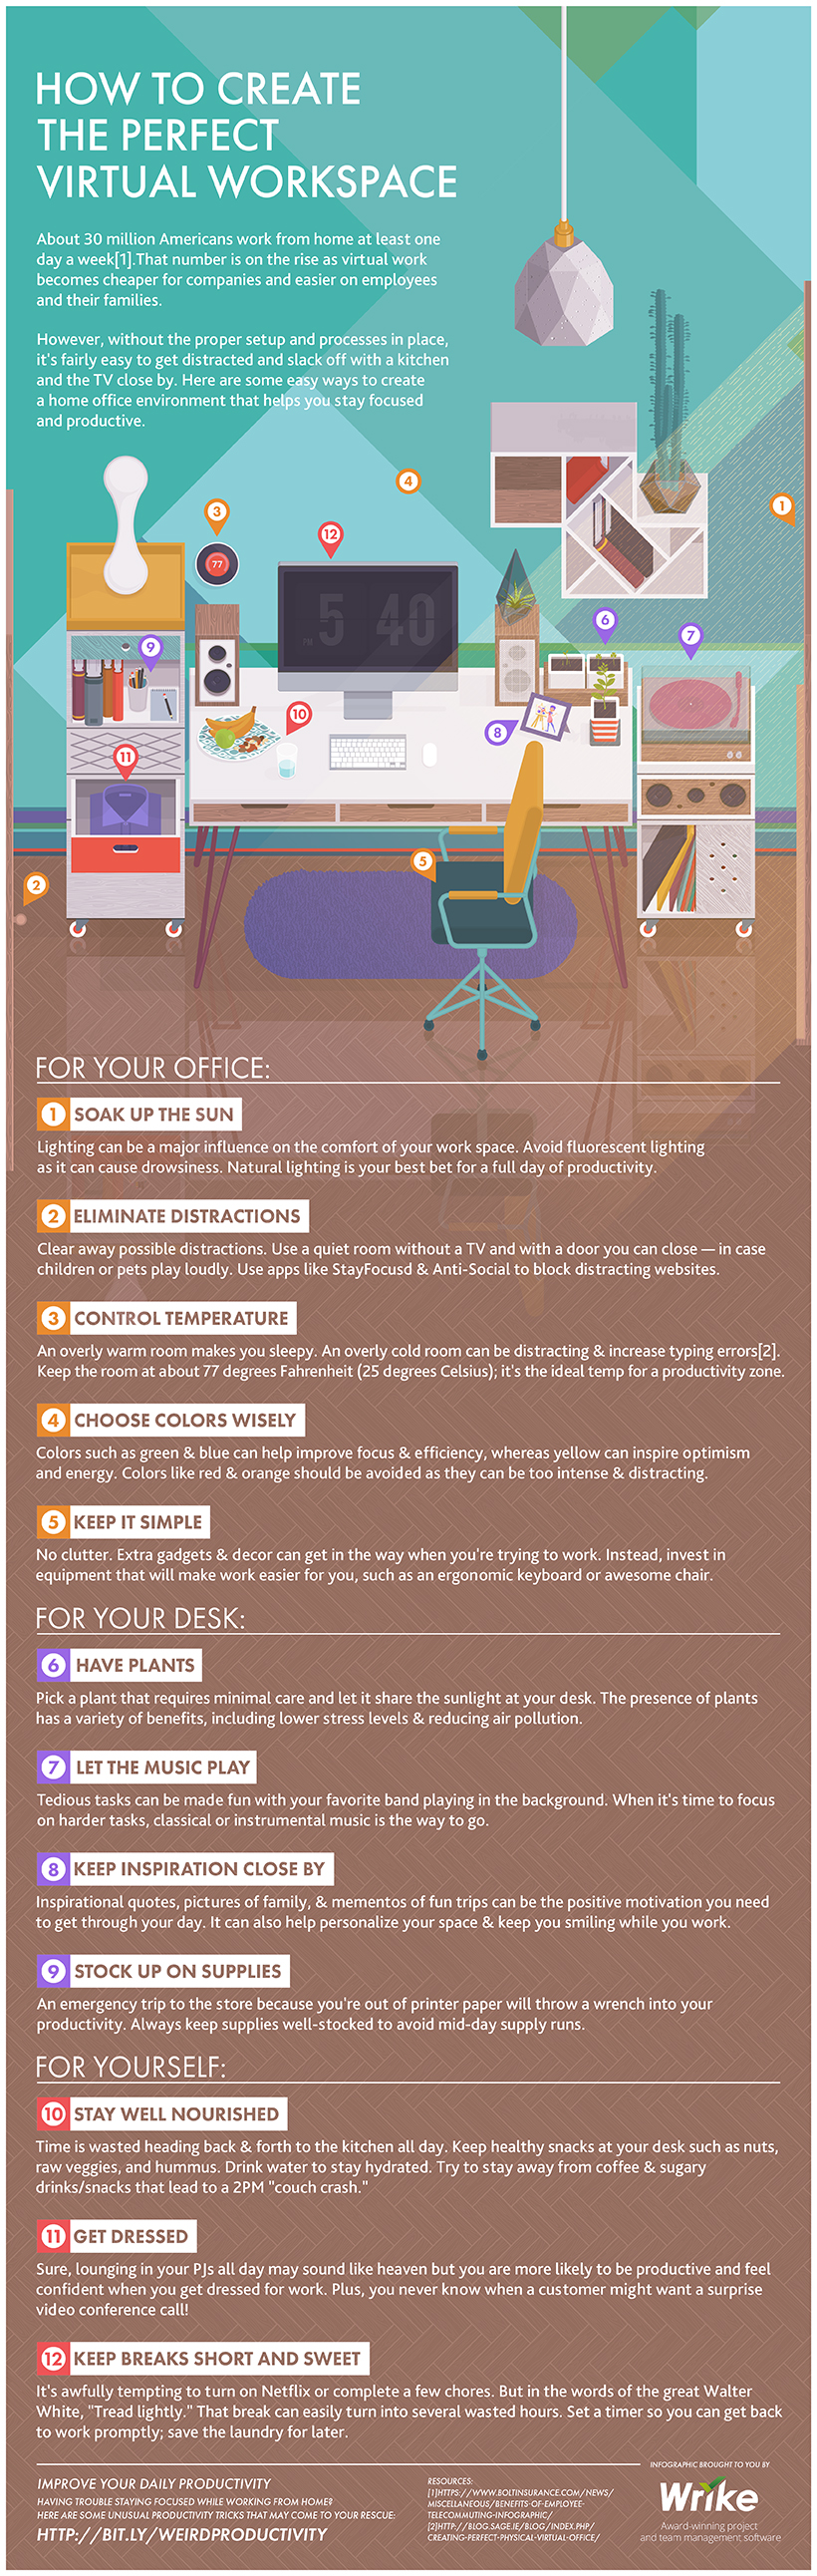 How to Create Your Perfect Remote Work Environment (Infographic)